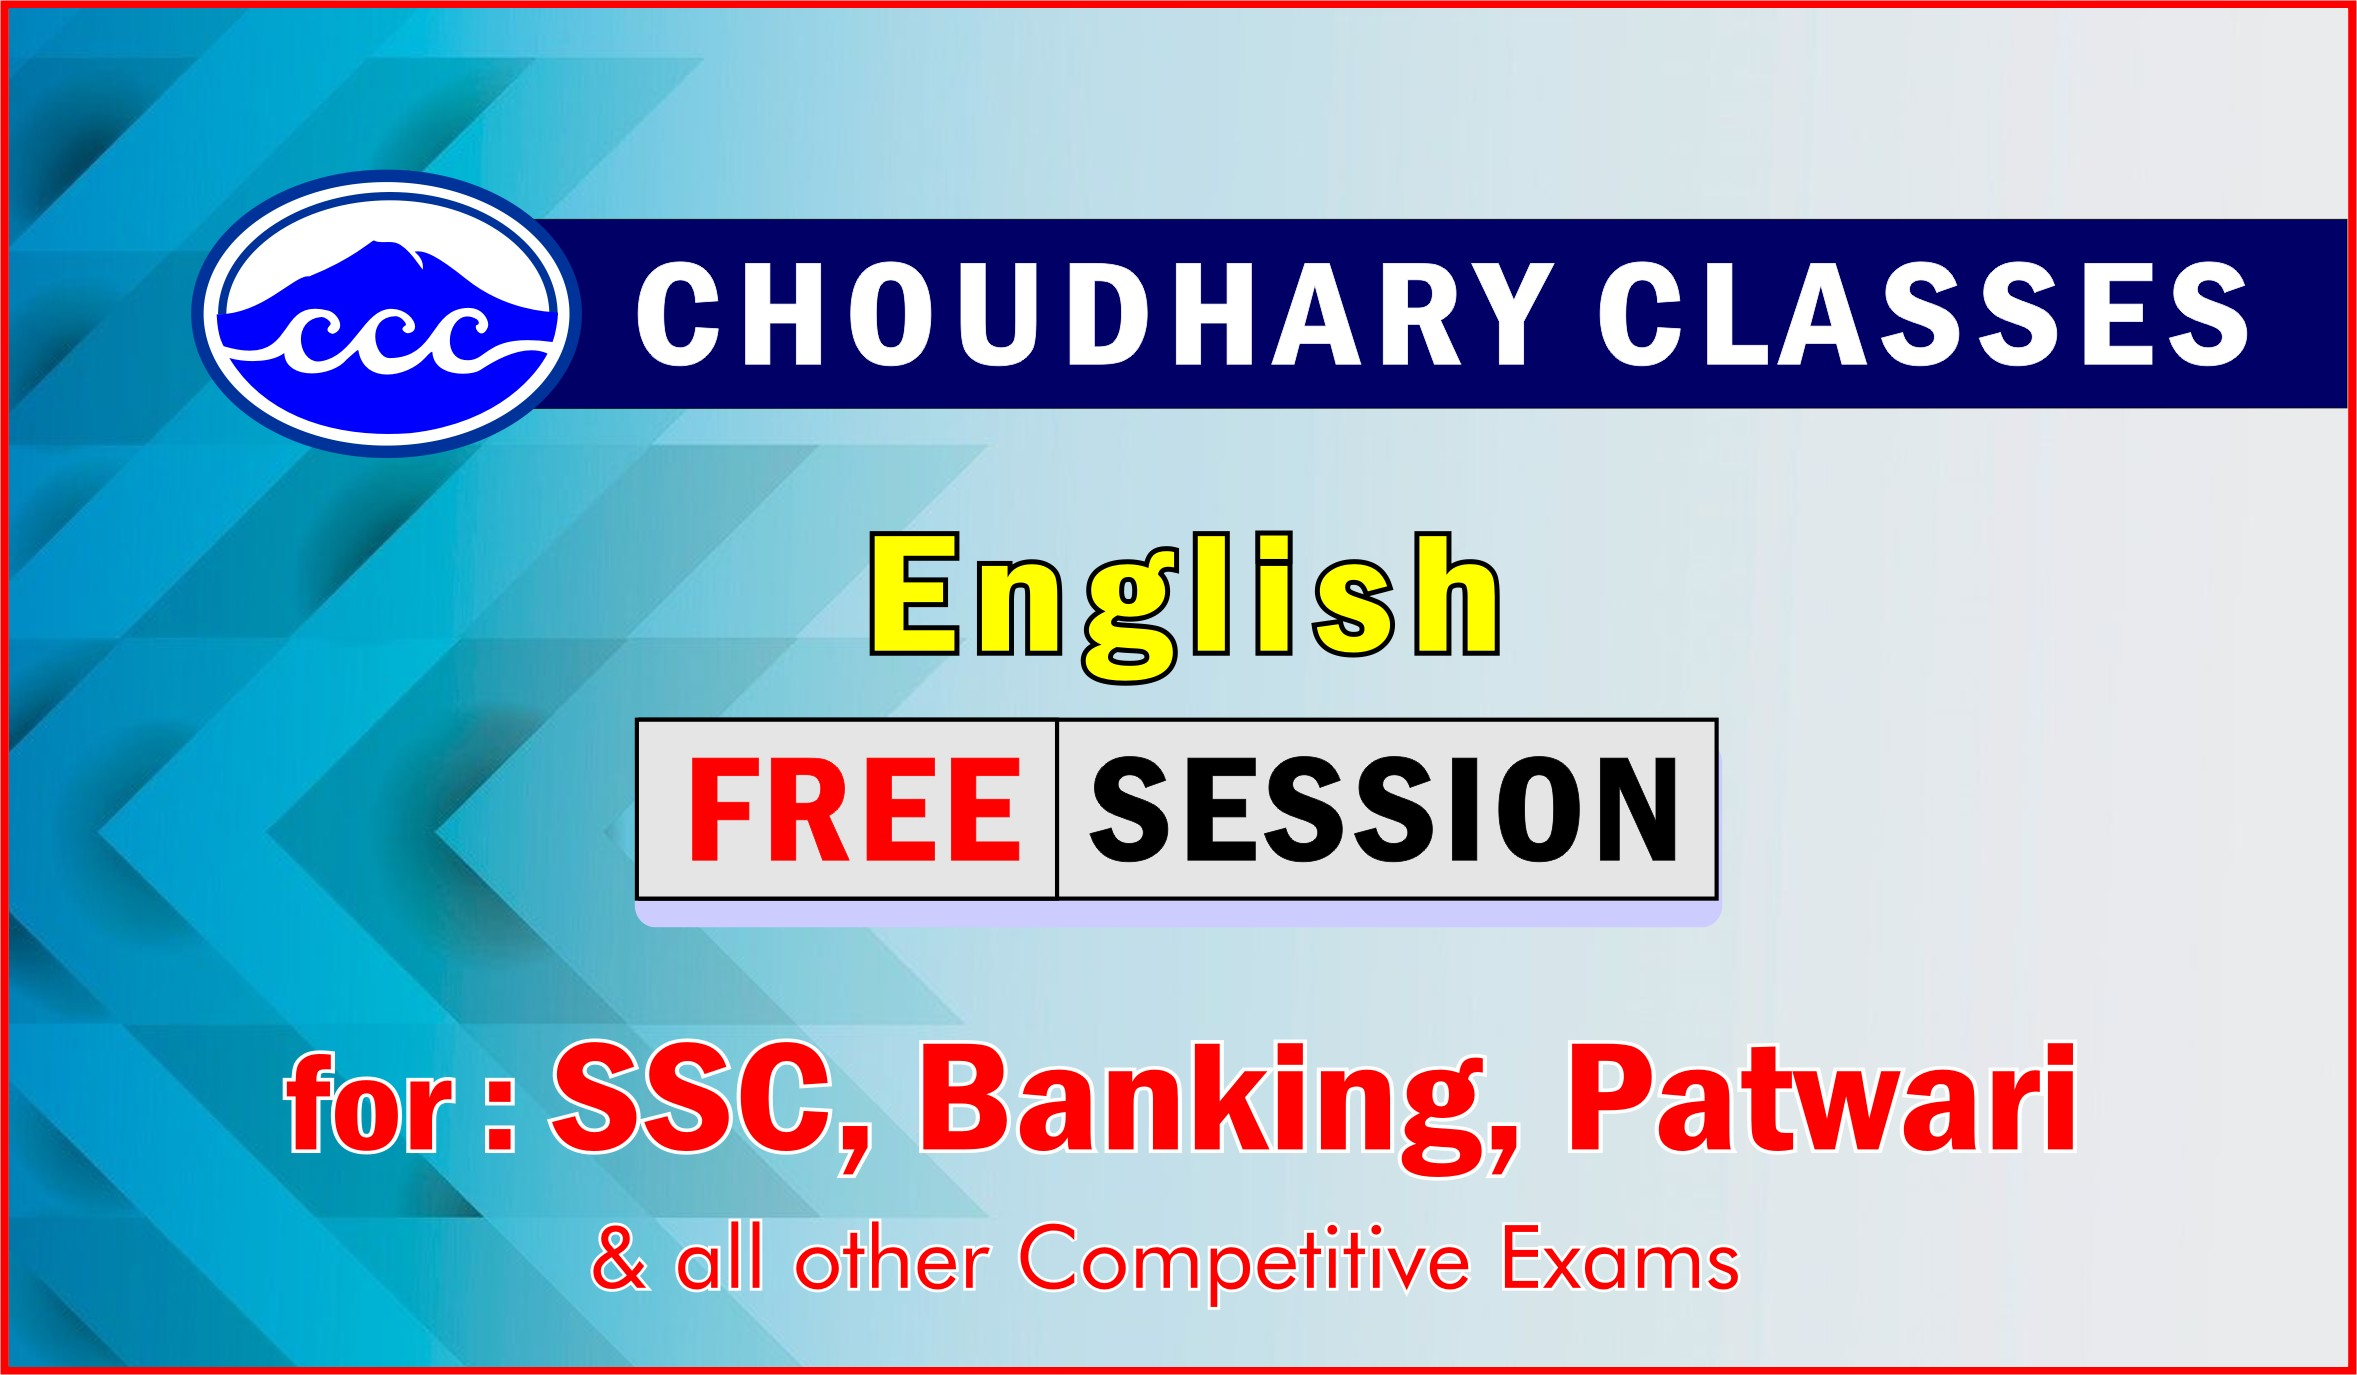 English Practice Session - 6